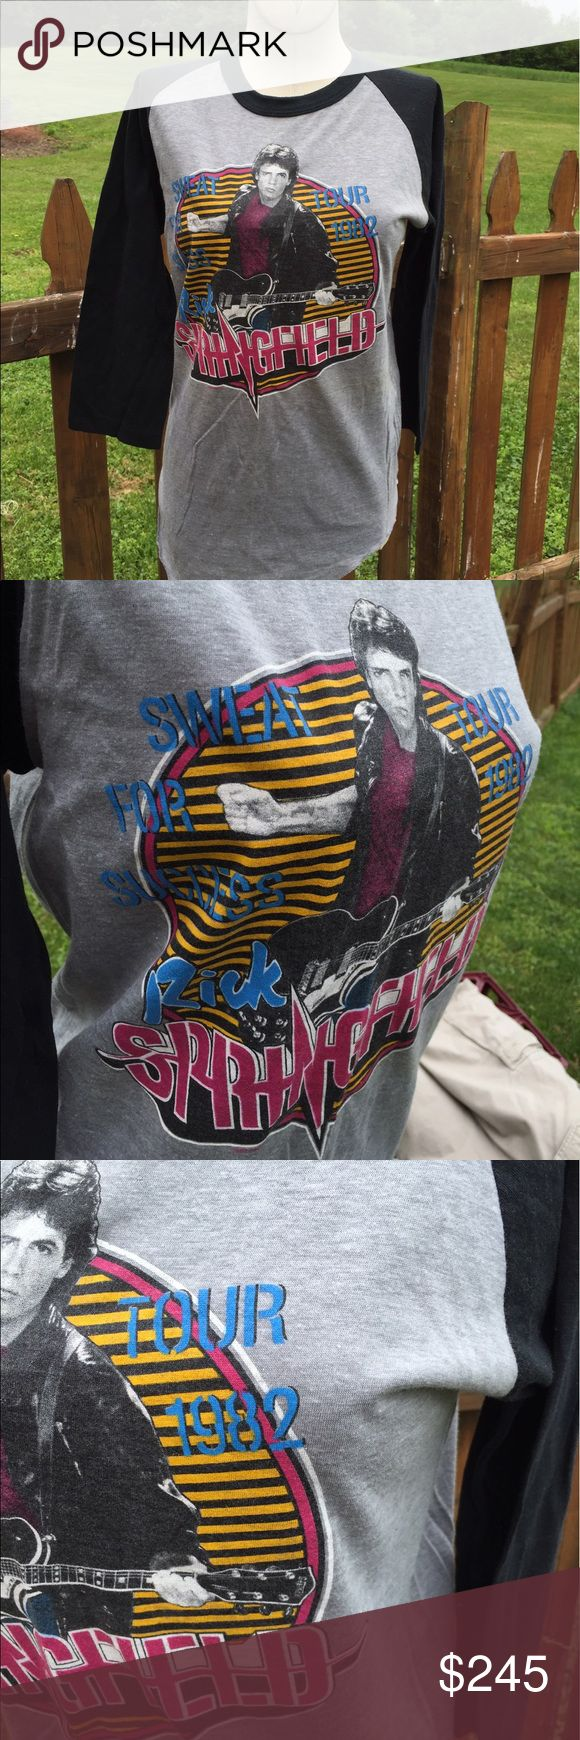 """Vintage Rick Springfield Concert Tour Raglan Shirt Super rare. Thin 50/50 blend Raglan concert shirt from 1982. Measures: pit to pit: 17"""". Bottom of the collar in the back to the bottom of the shirt: 28"""". Very nice vintage shirt. Be sure to view the other items in our closet. We offer both women's and Mens items in a variety of sizes. Bundle and save!! Thank you for viewing our item!! Vintage Tops"""